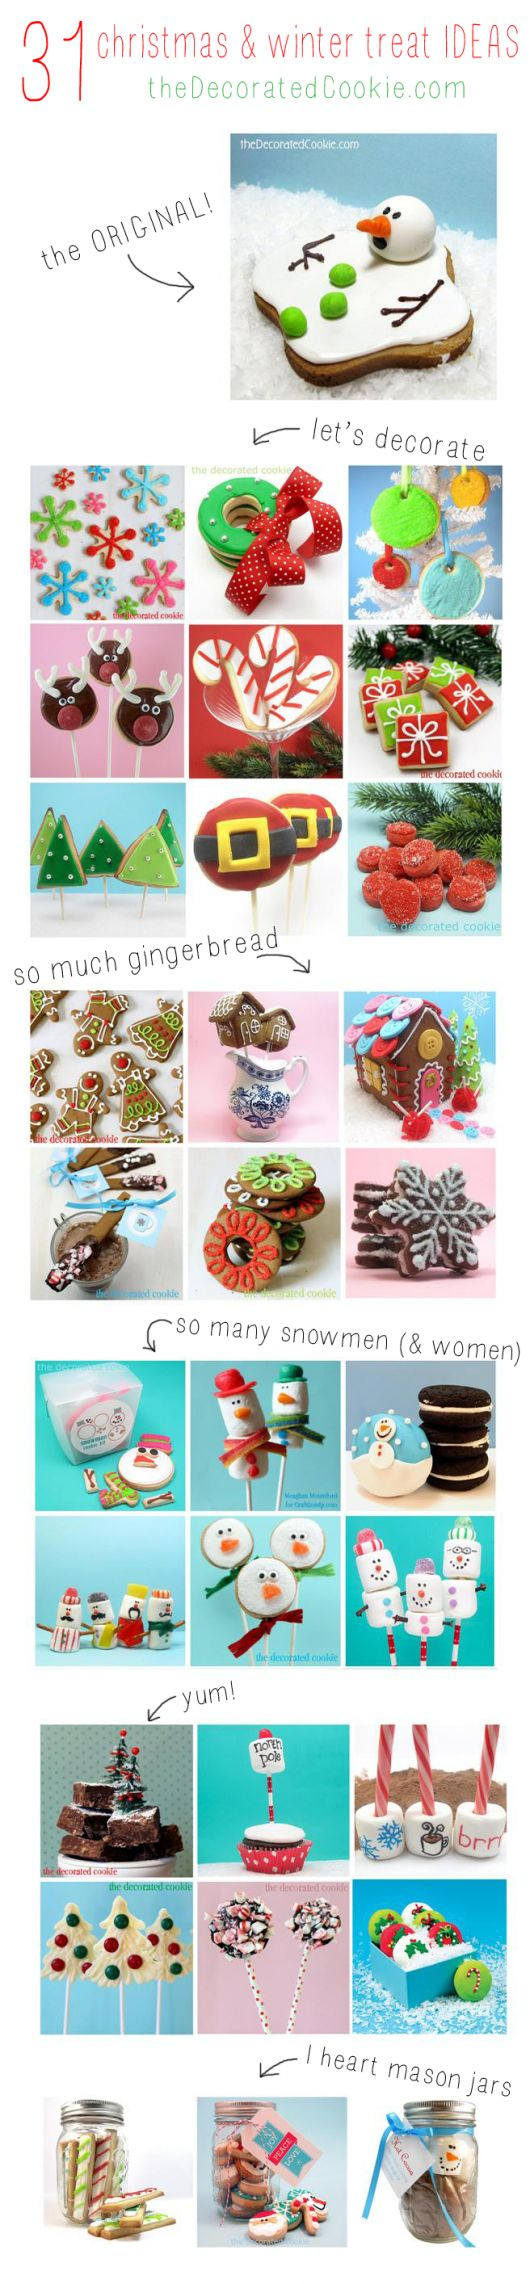 31 Ideas for Winter and Christmas treats and sweets.